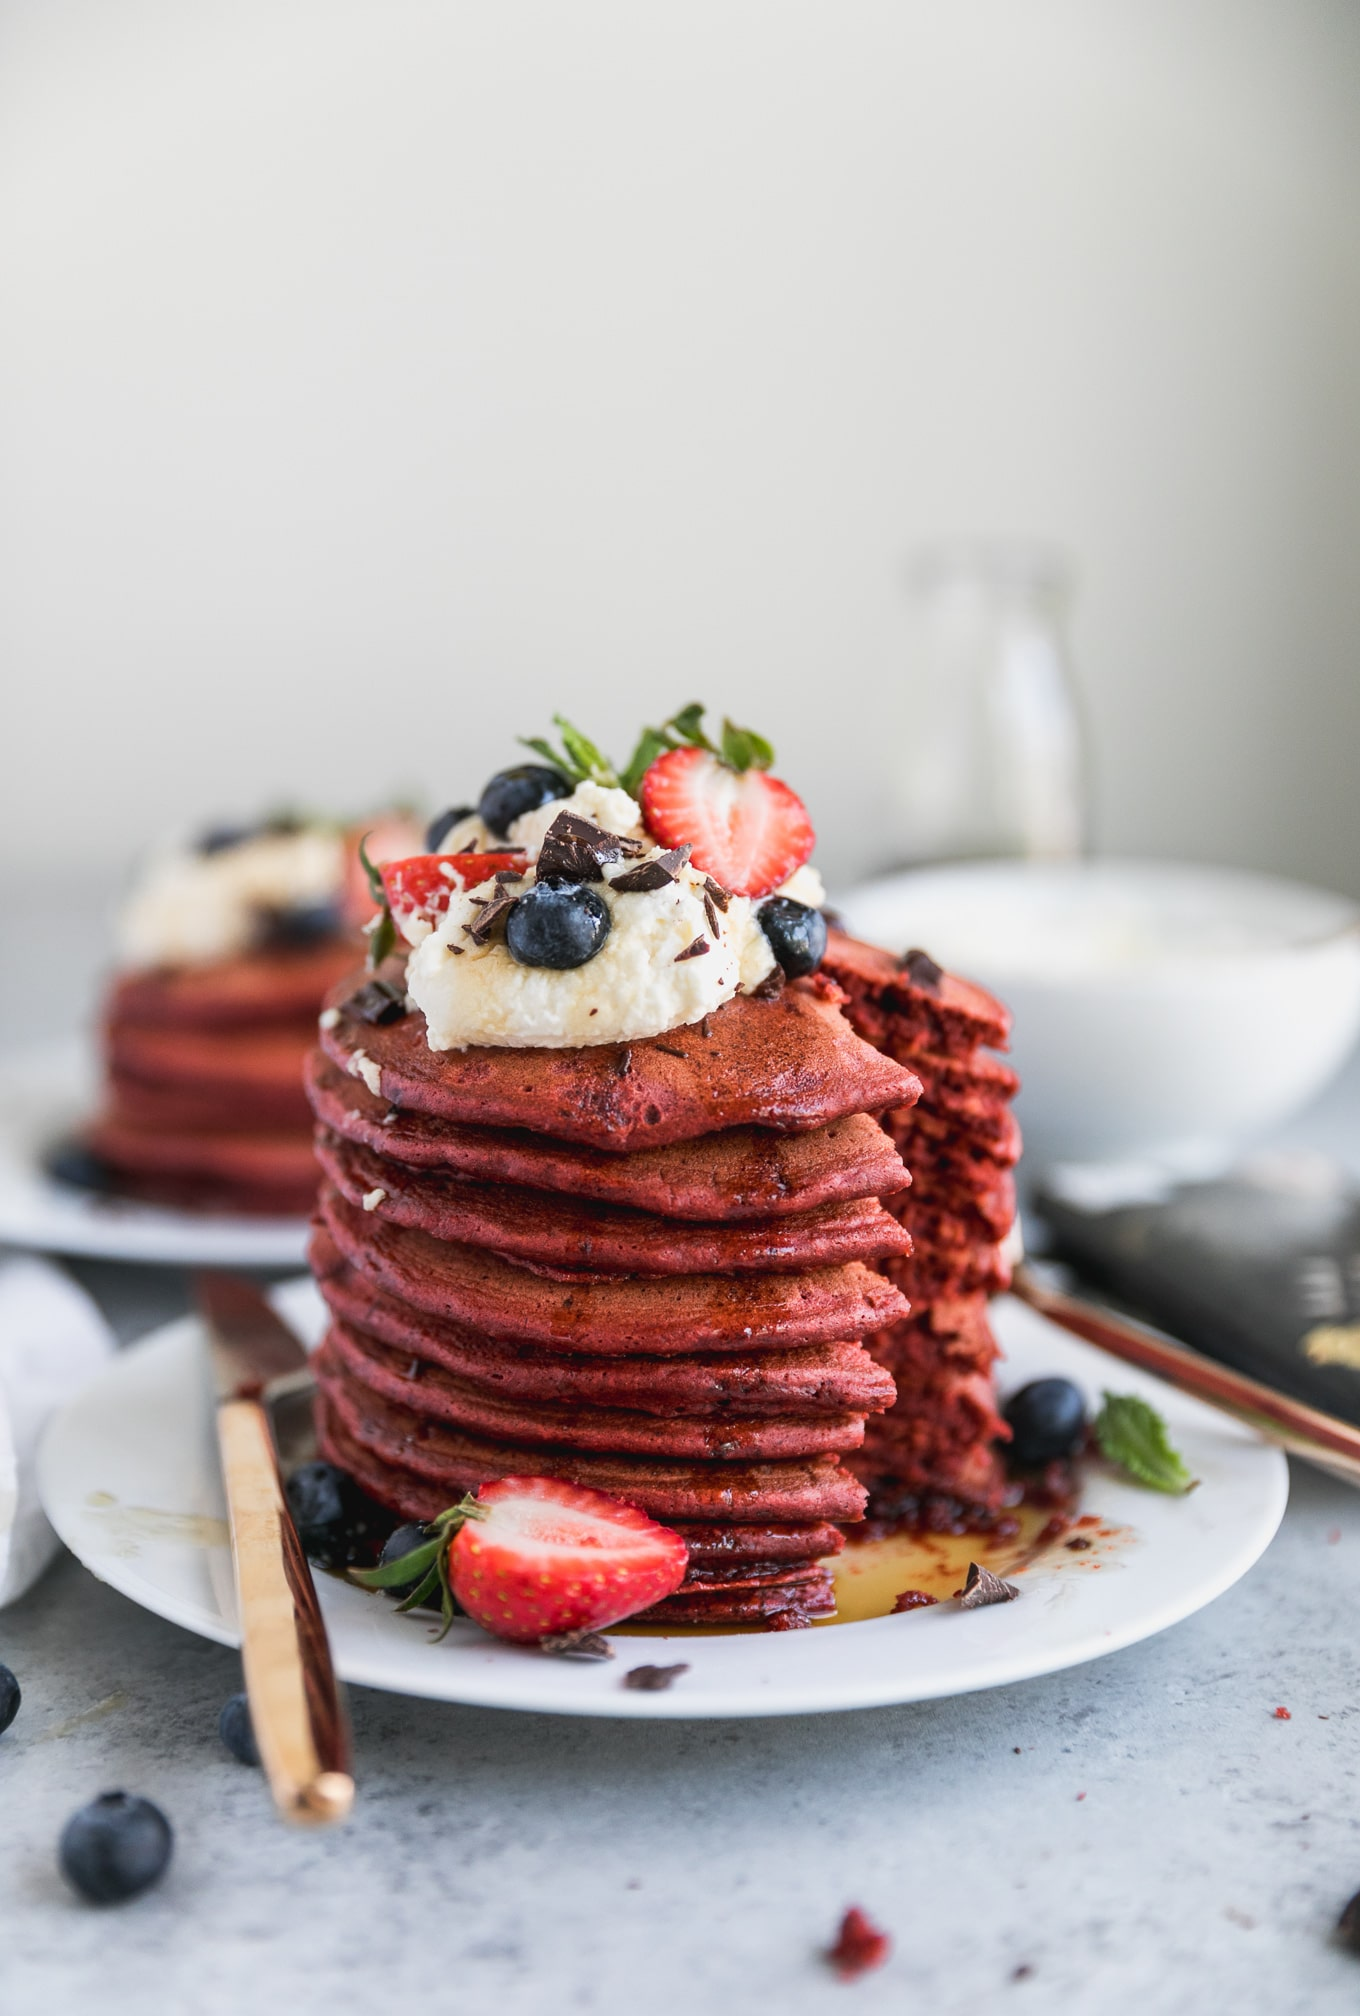 Forward facing shot of a stack of red velvet pancakes topped with whipped cream and berries with a bite taken out of them